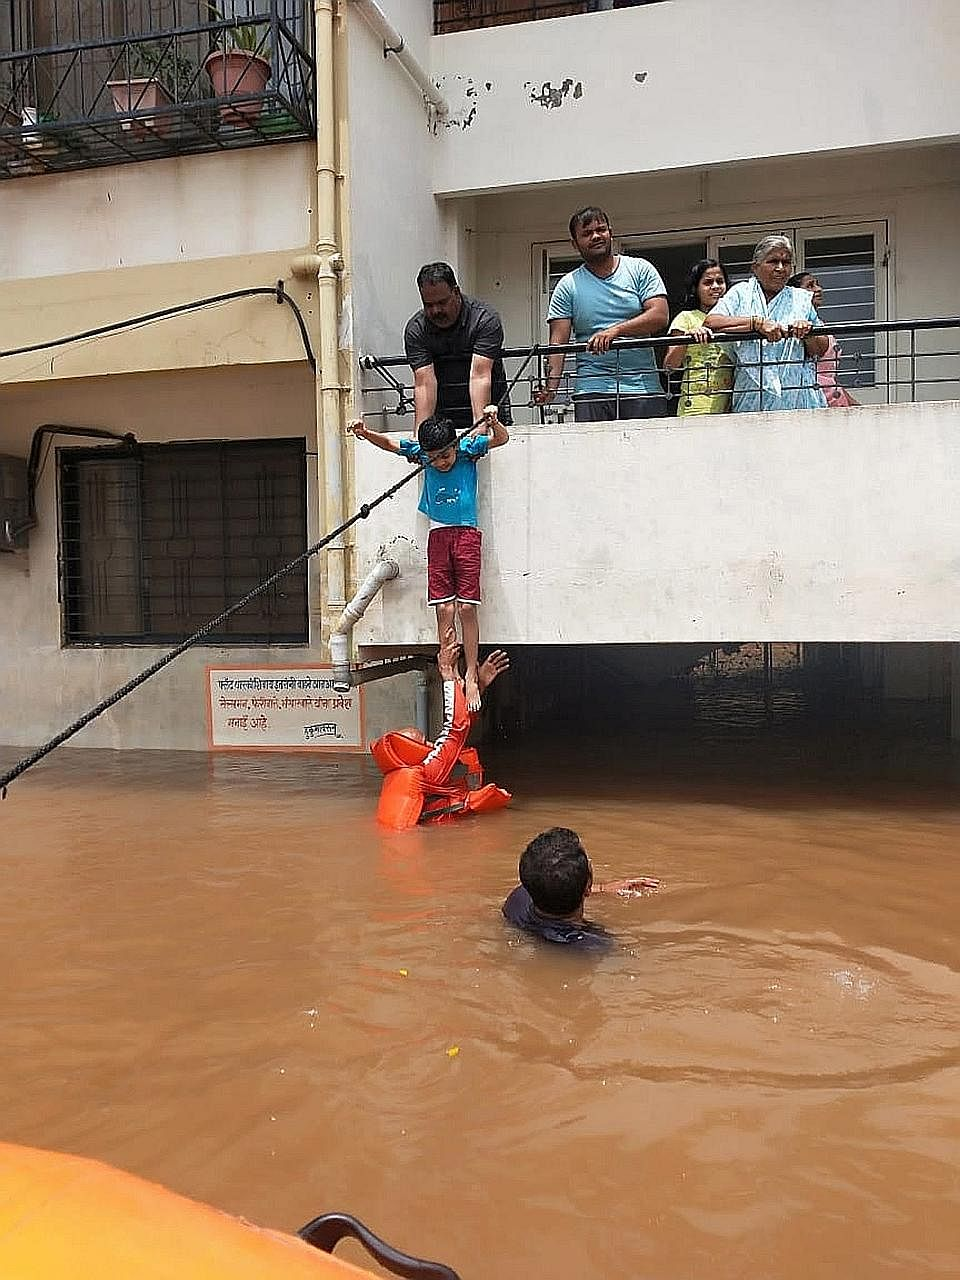 Members of India's National Disaster Response Force evacuating a child while other residents waited for their turn in the flood-hit area of Sangli in Maharashtra state on Sunday.